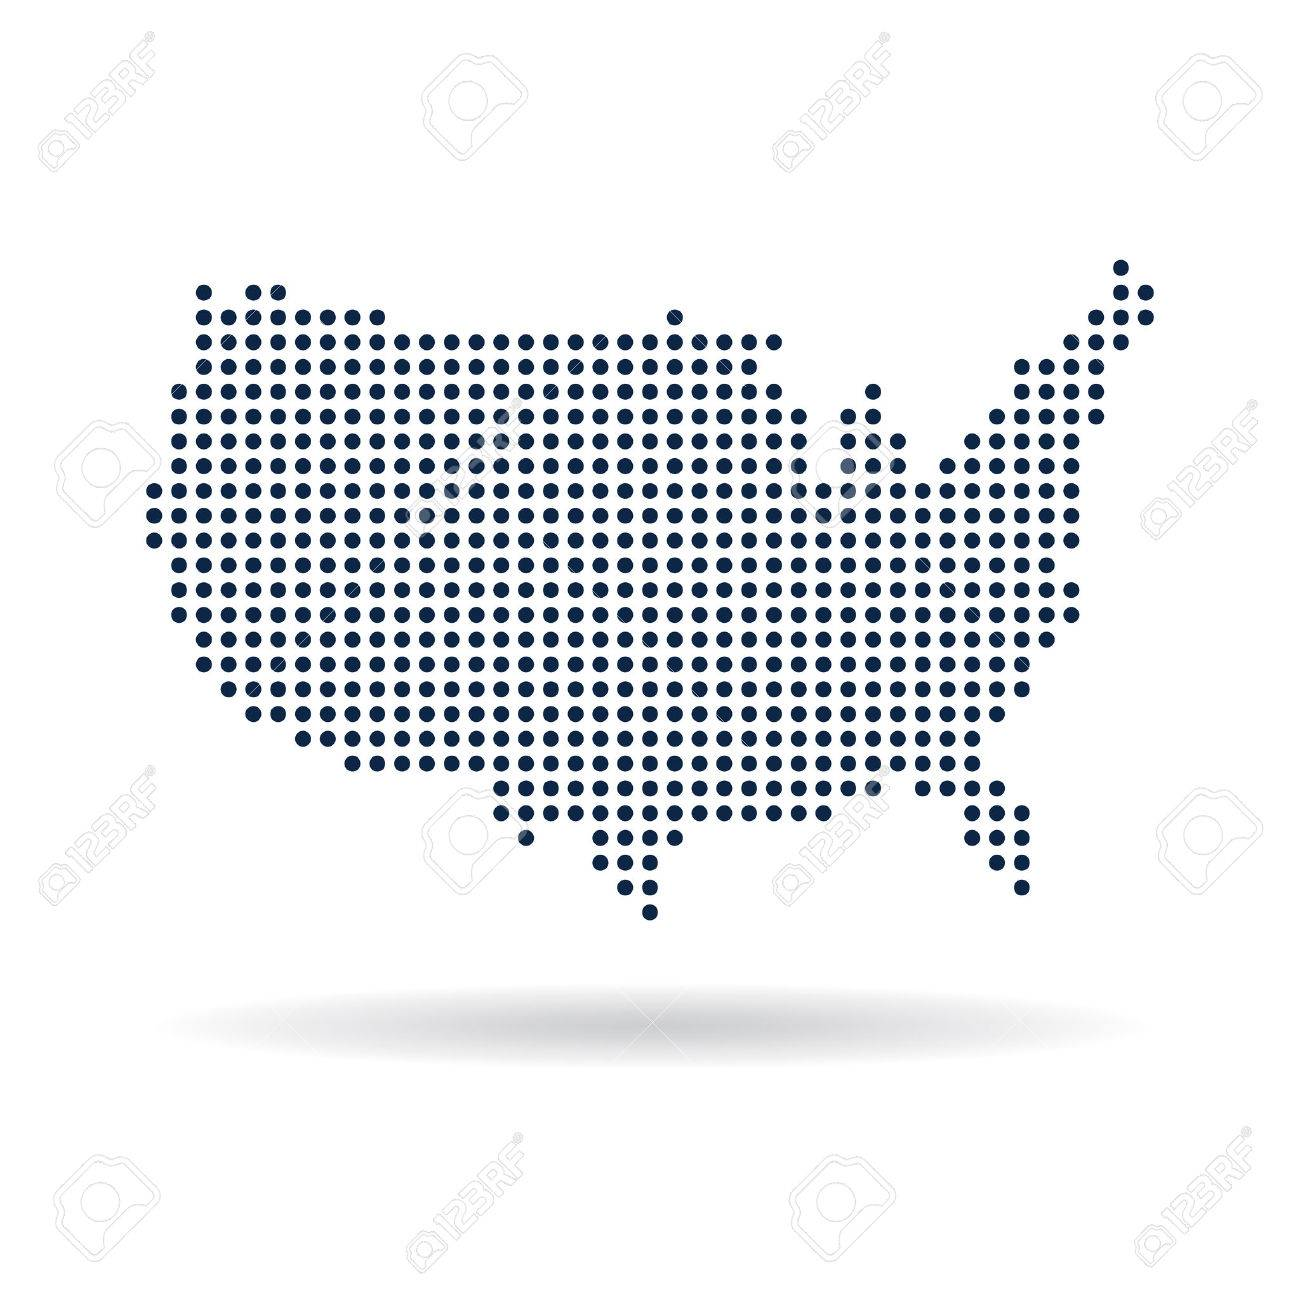 USA dot map. Concept for networking, technology and connections - 42091761